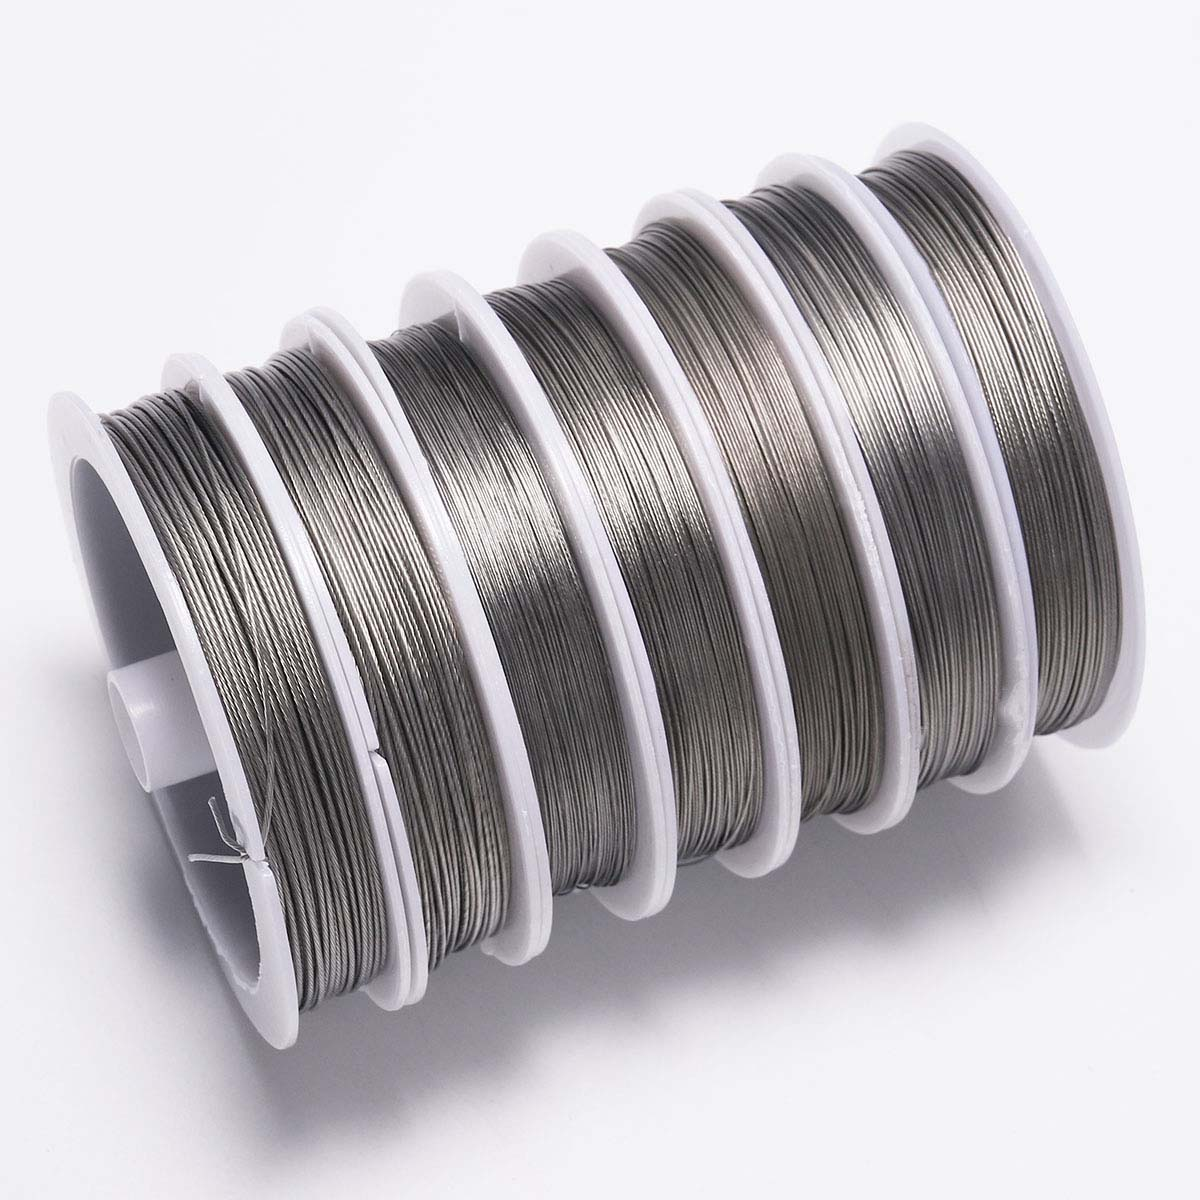 1 Roll Stainless Steel Tiger Tail Beading Wire Cord for DIY Jewelry Makings